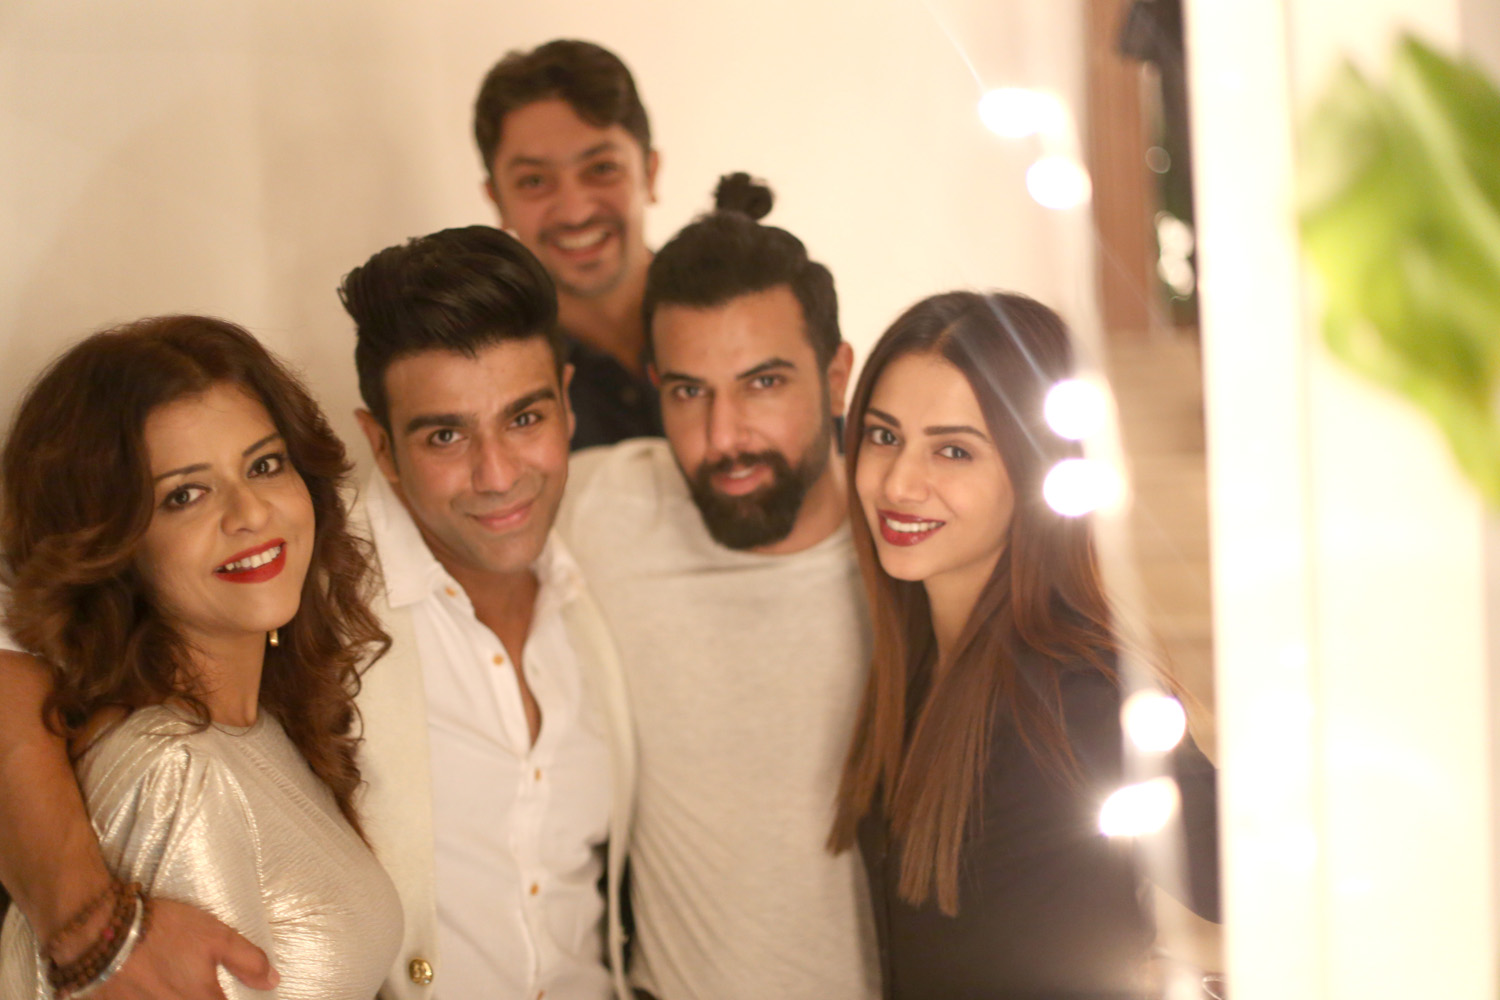 Maria, Junii, Tausif, Noor, and Tooba siddiqui